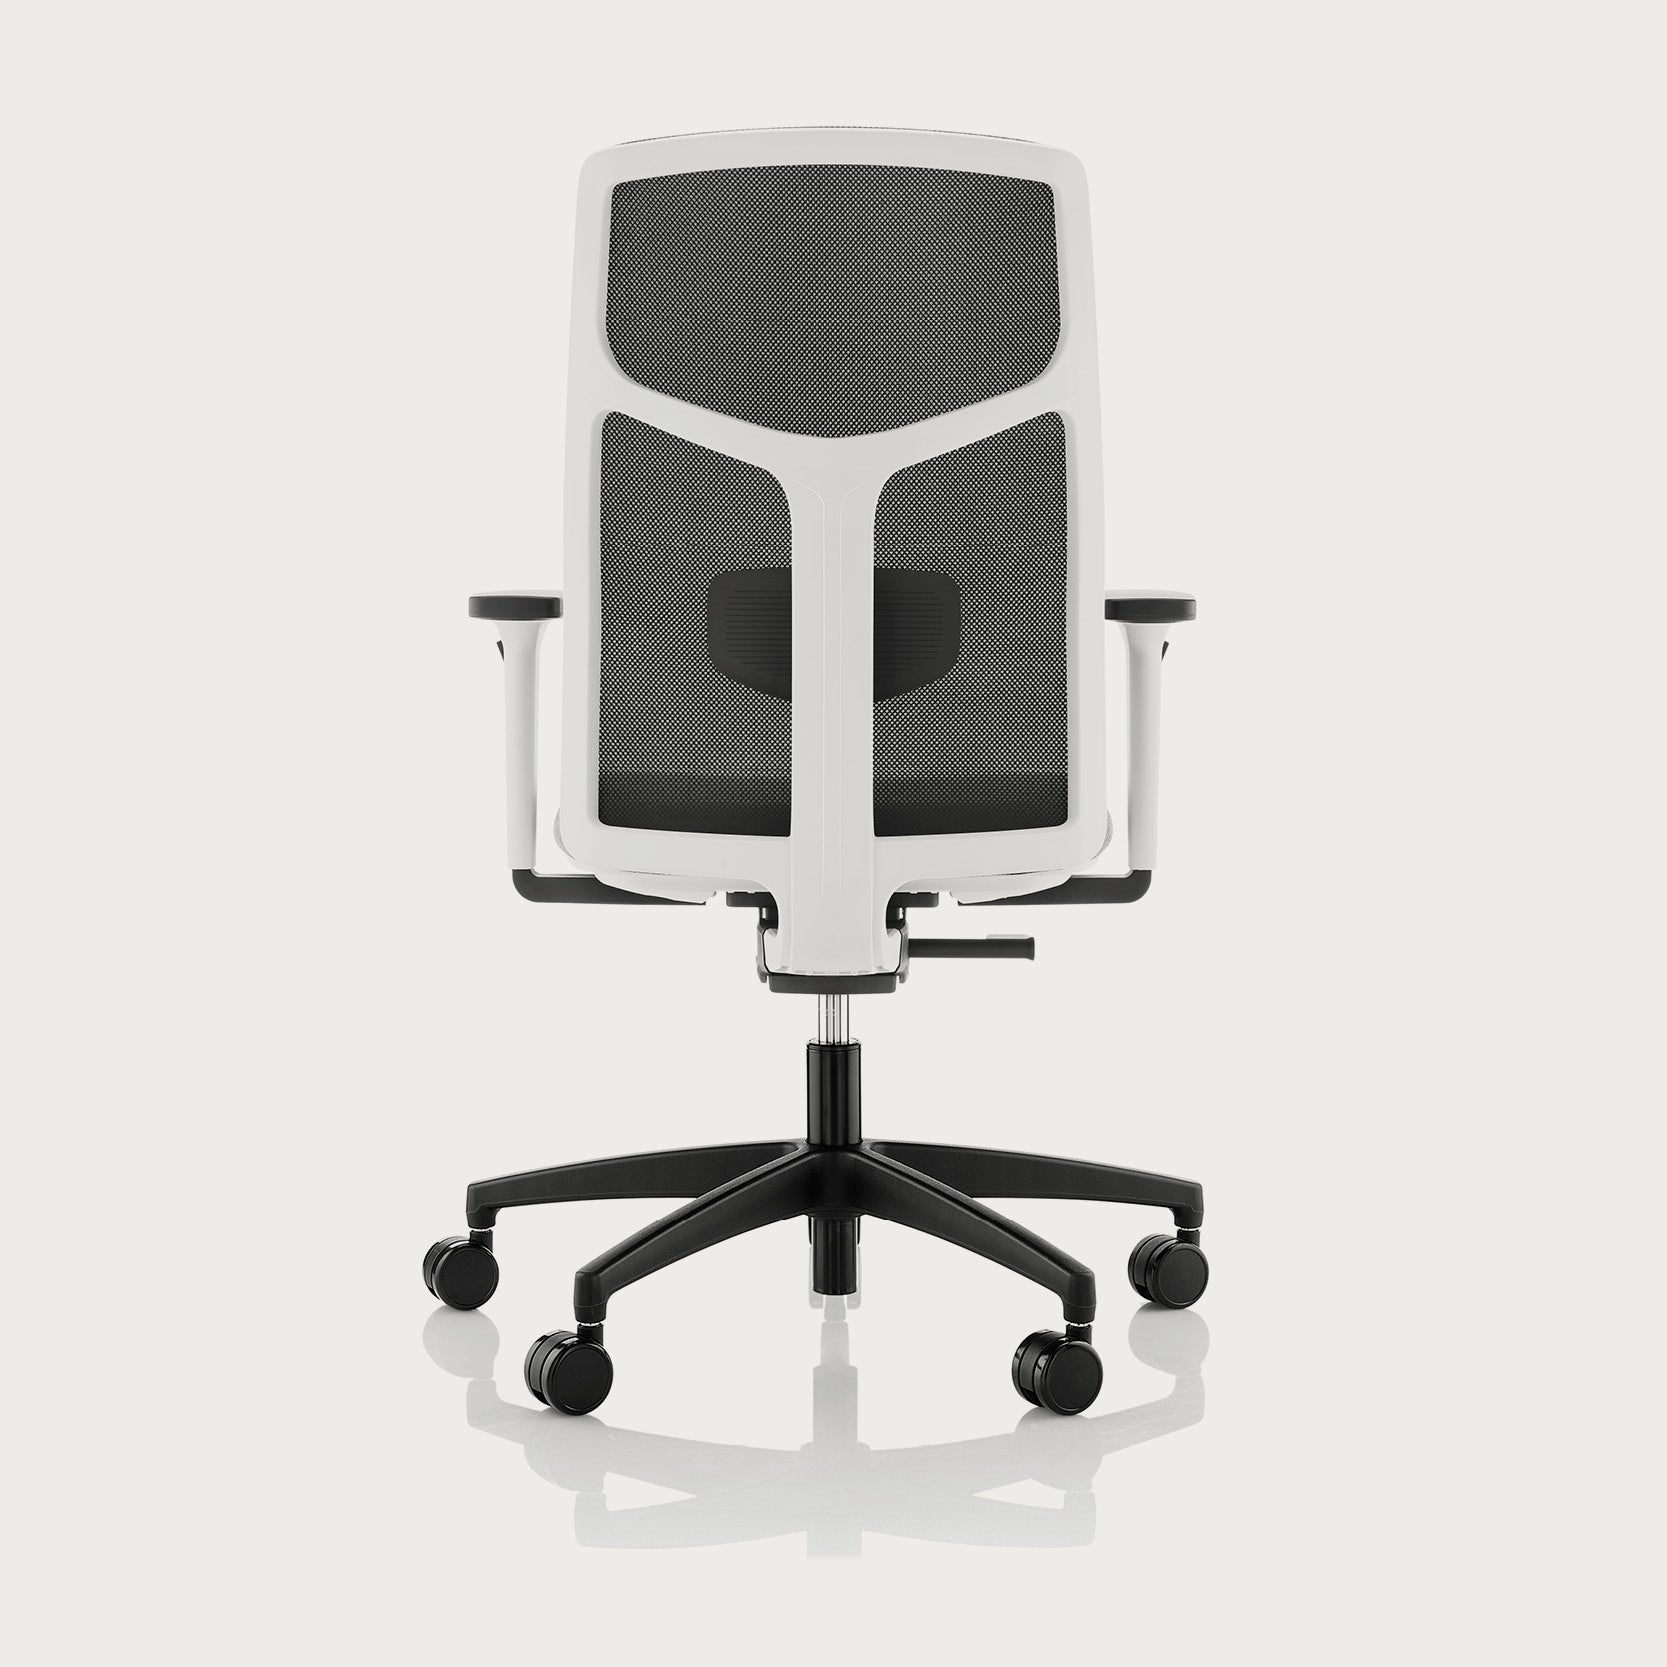 Tauro Work Chair